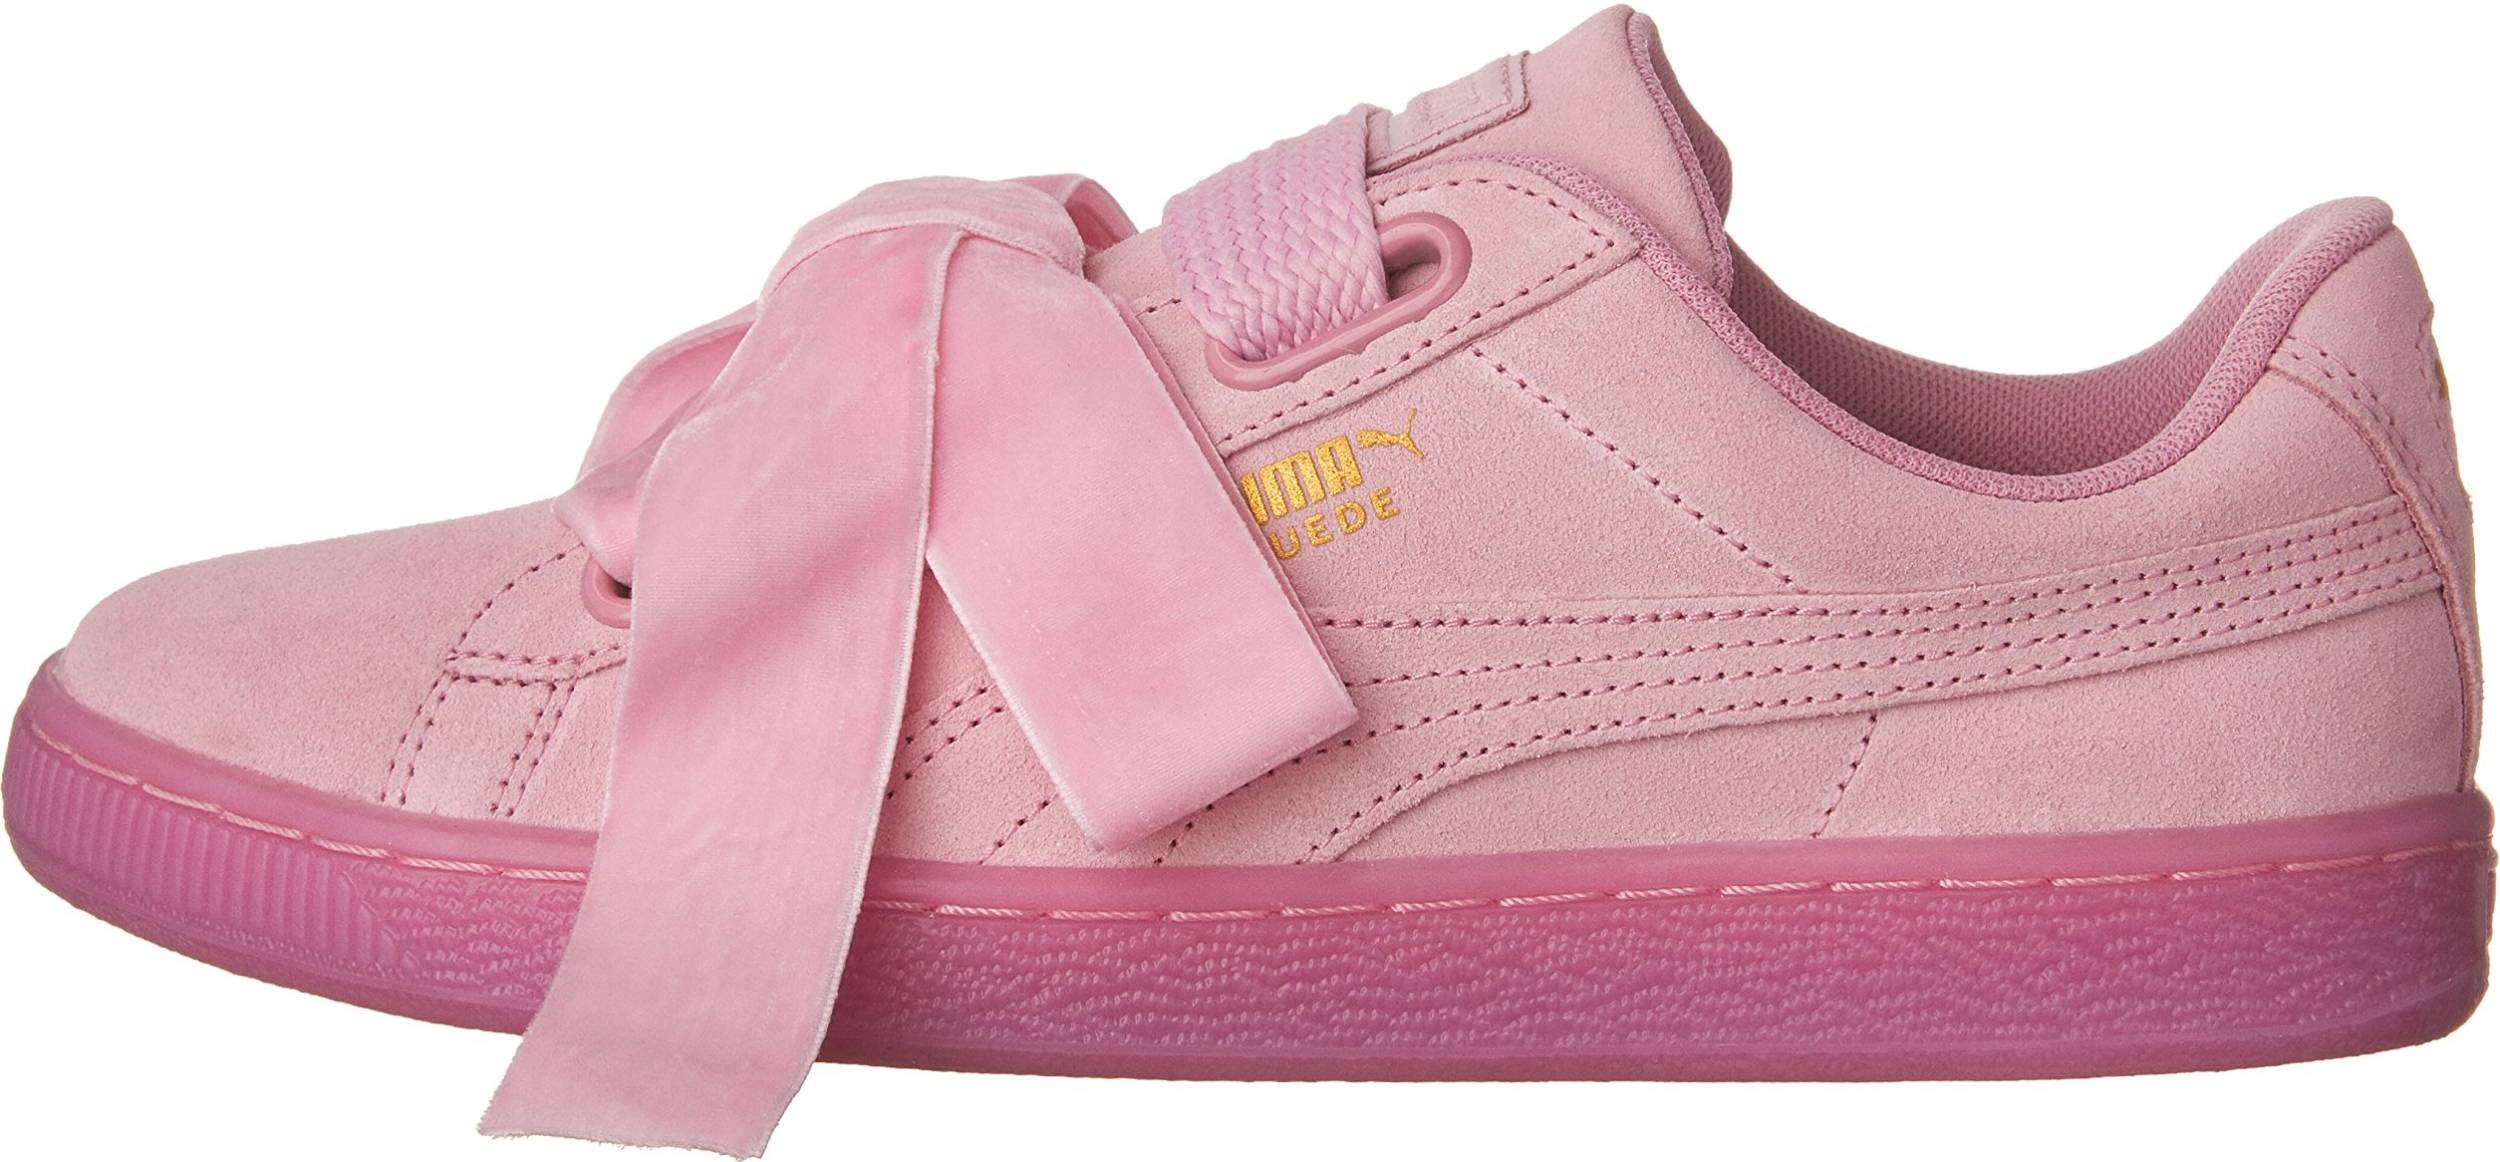 Puma Suede Heart Reset sneakers in blue pink (only $42) | RunRepeat